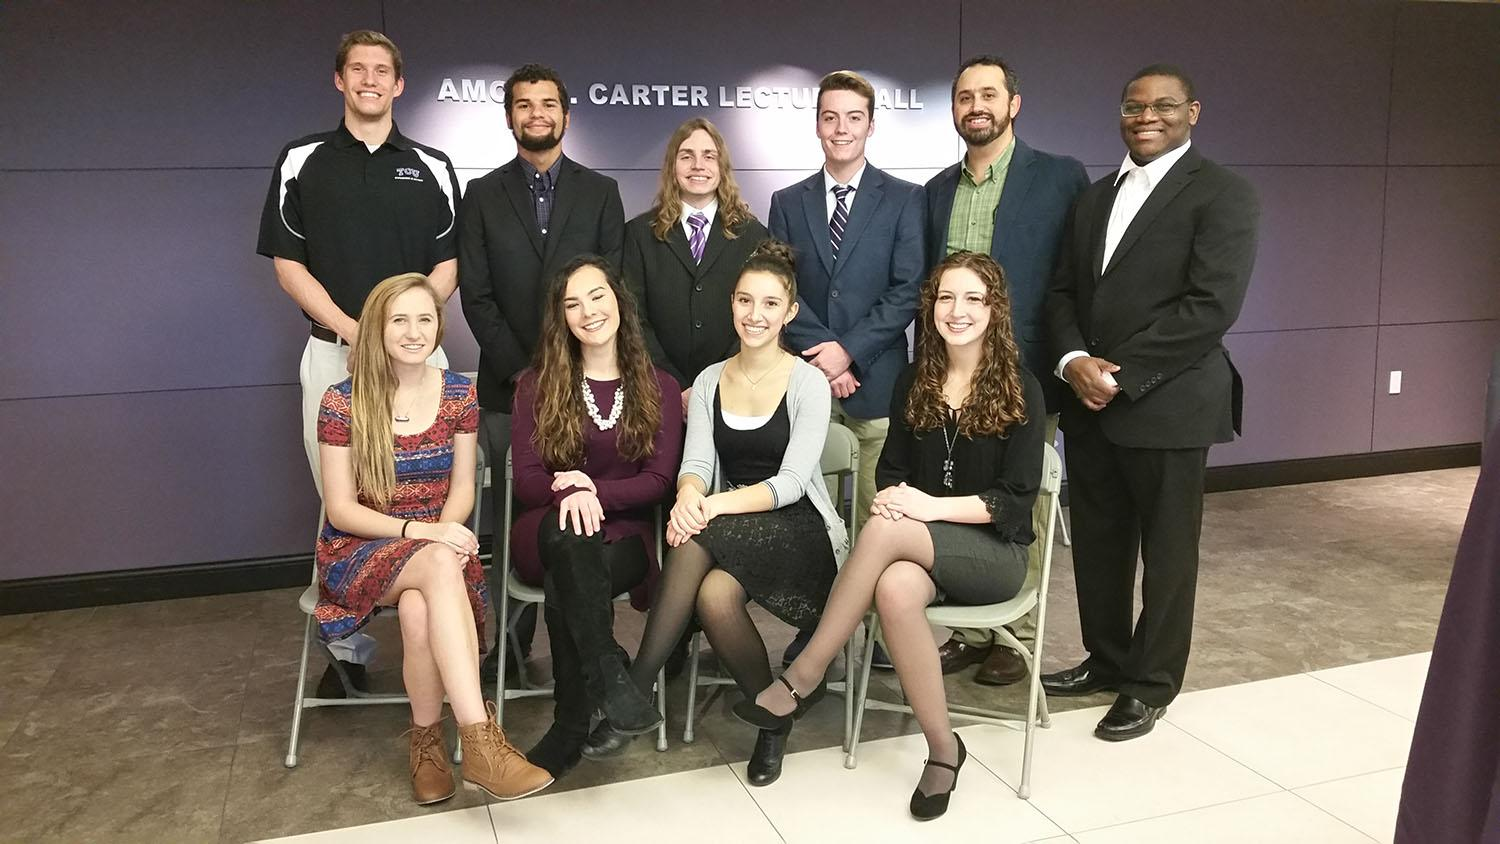 Nine TCU students tackled some major civil rights issues on Wednesday. (Photo courtesy Max Krochmal)